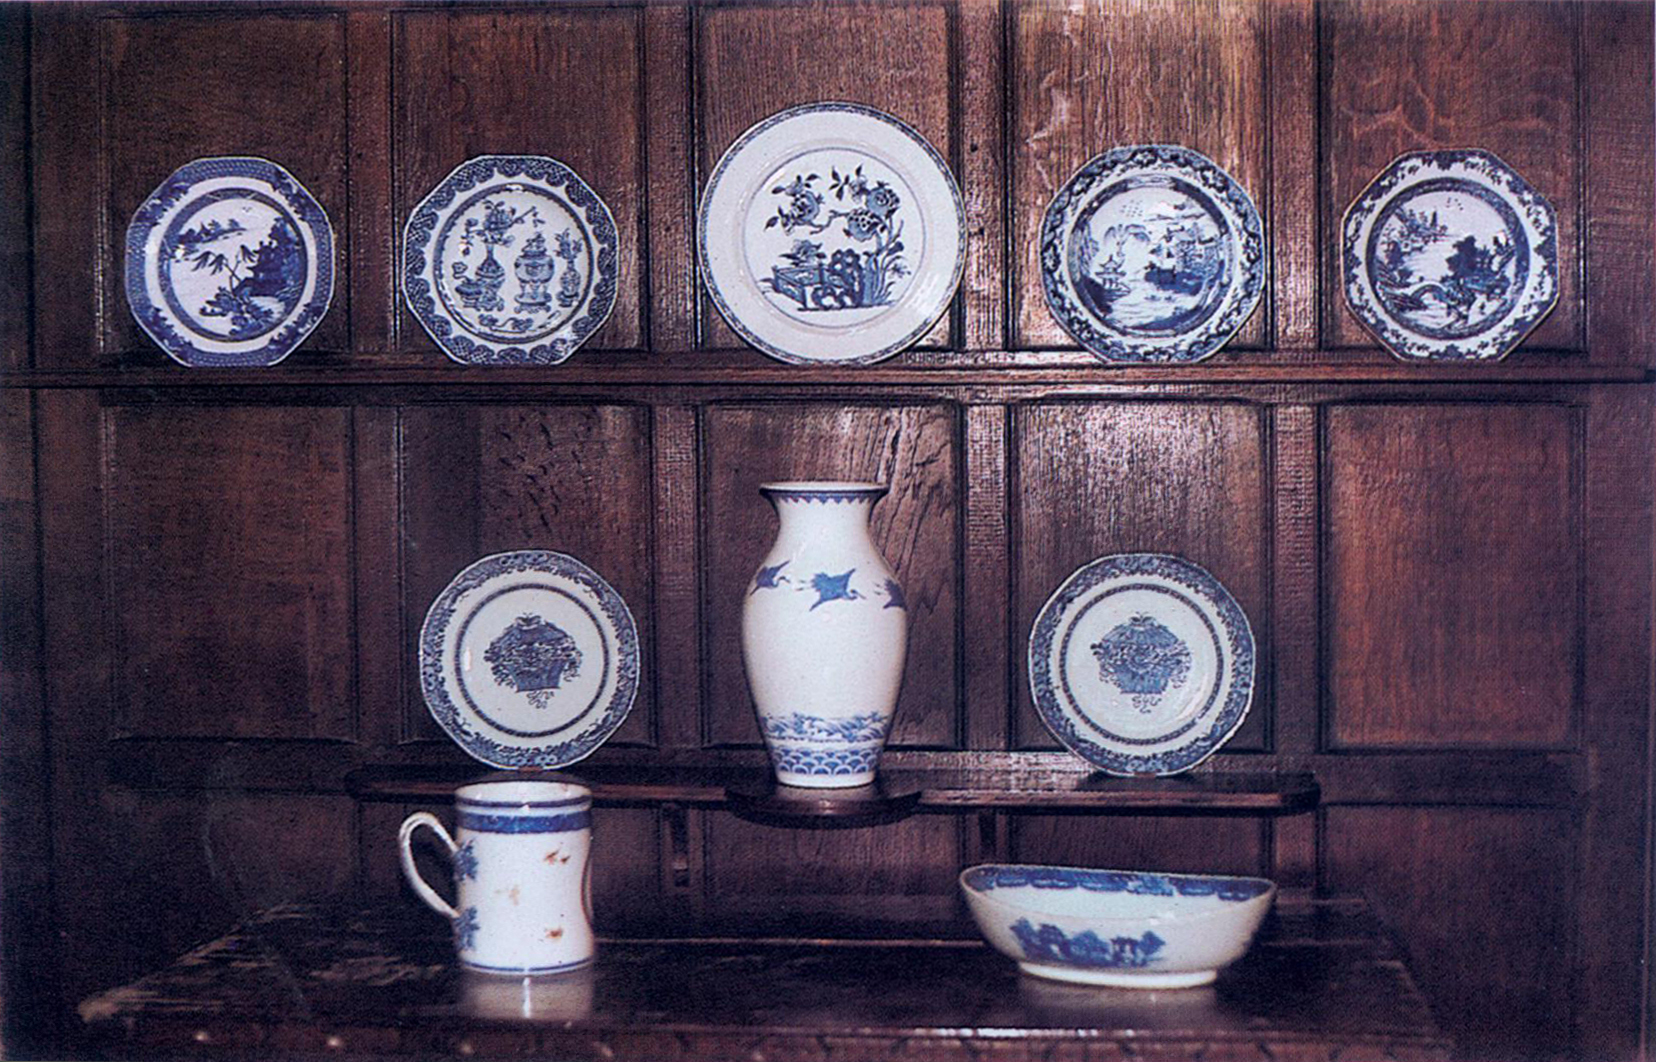 Dante Gabriel Rossetti's blue and white china collection